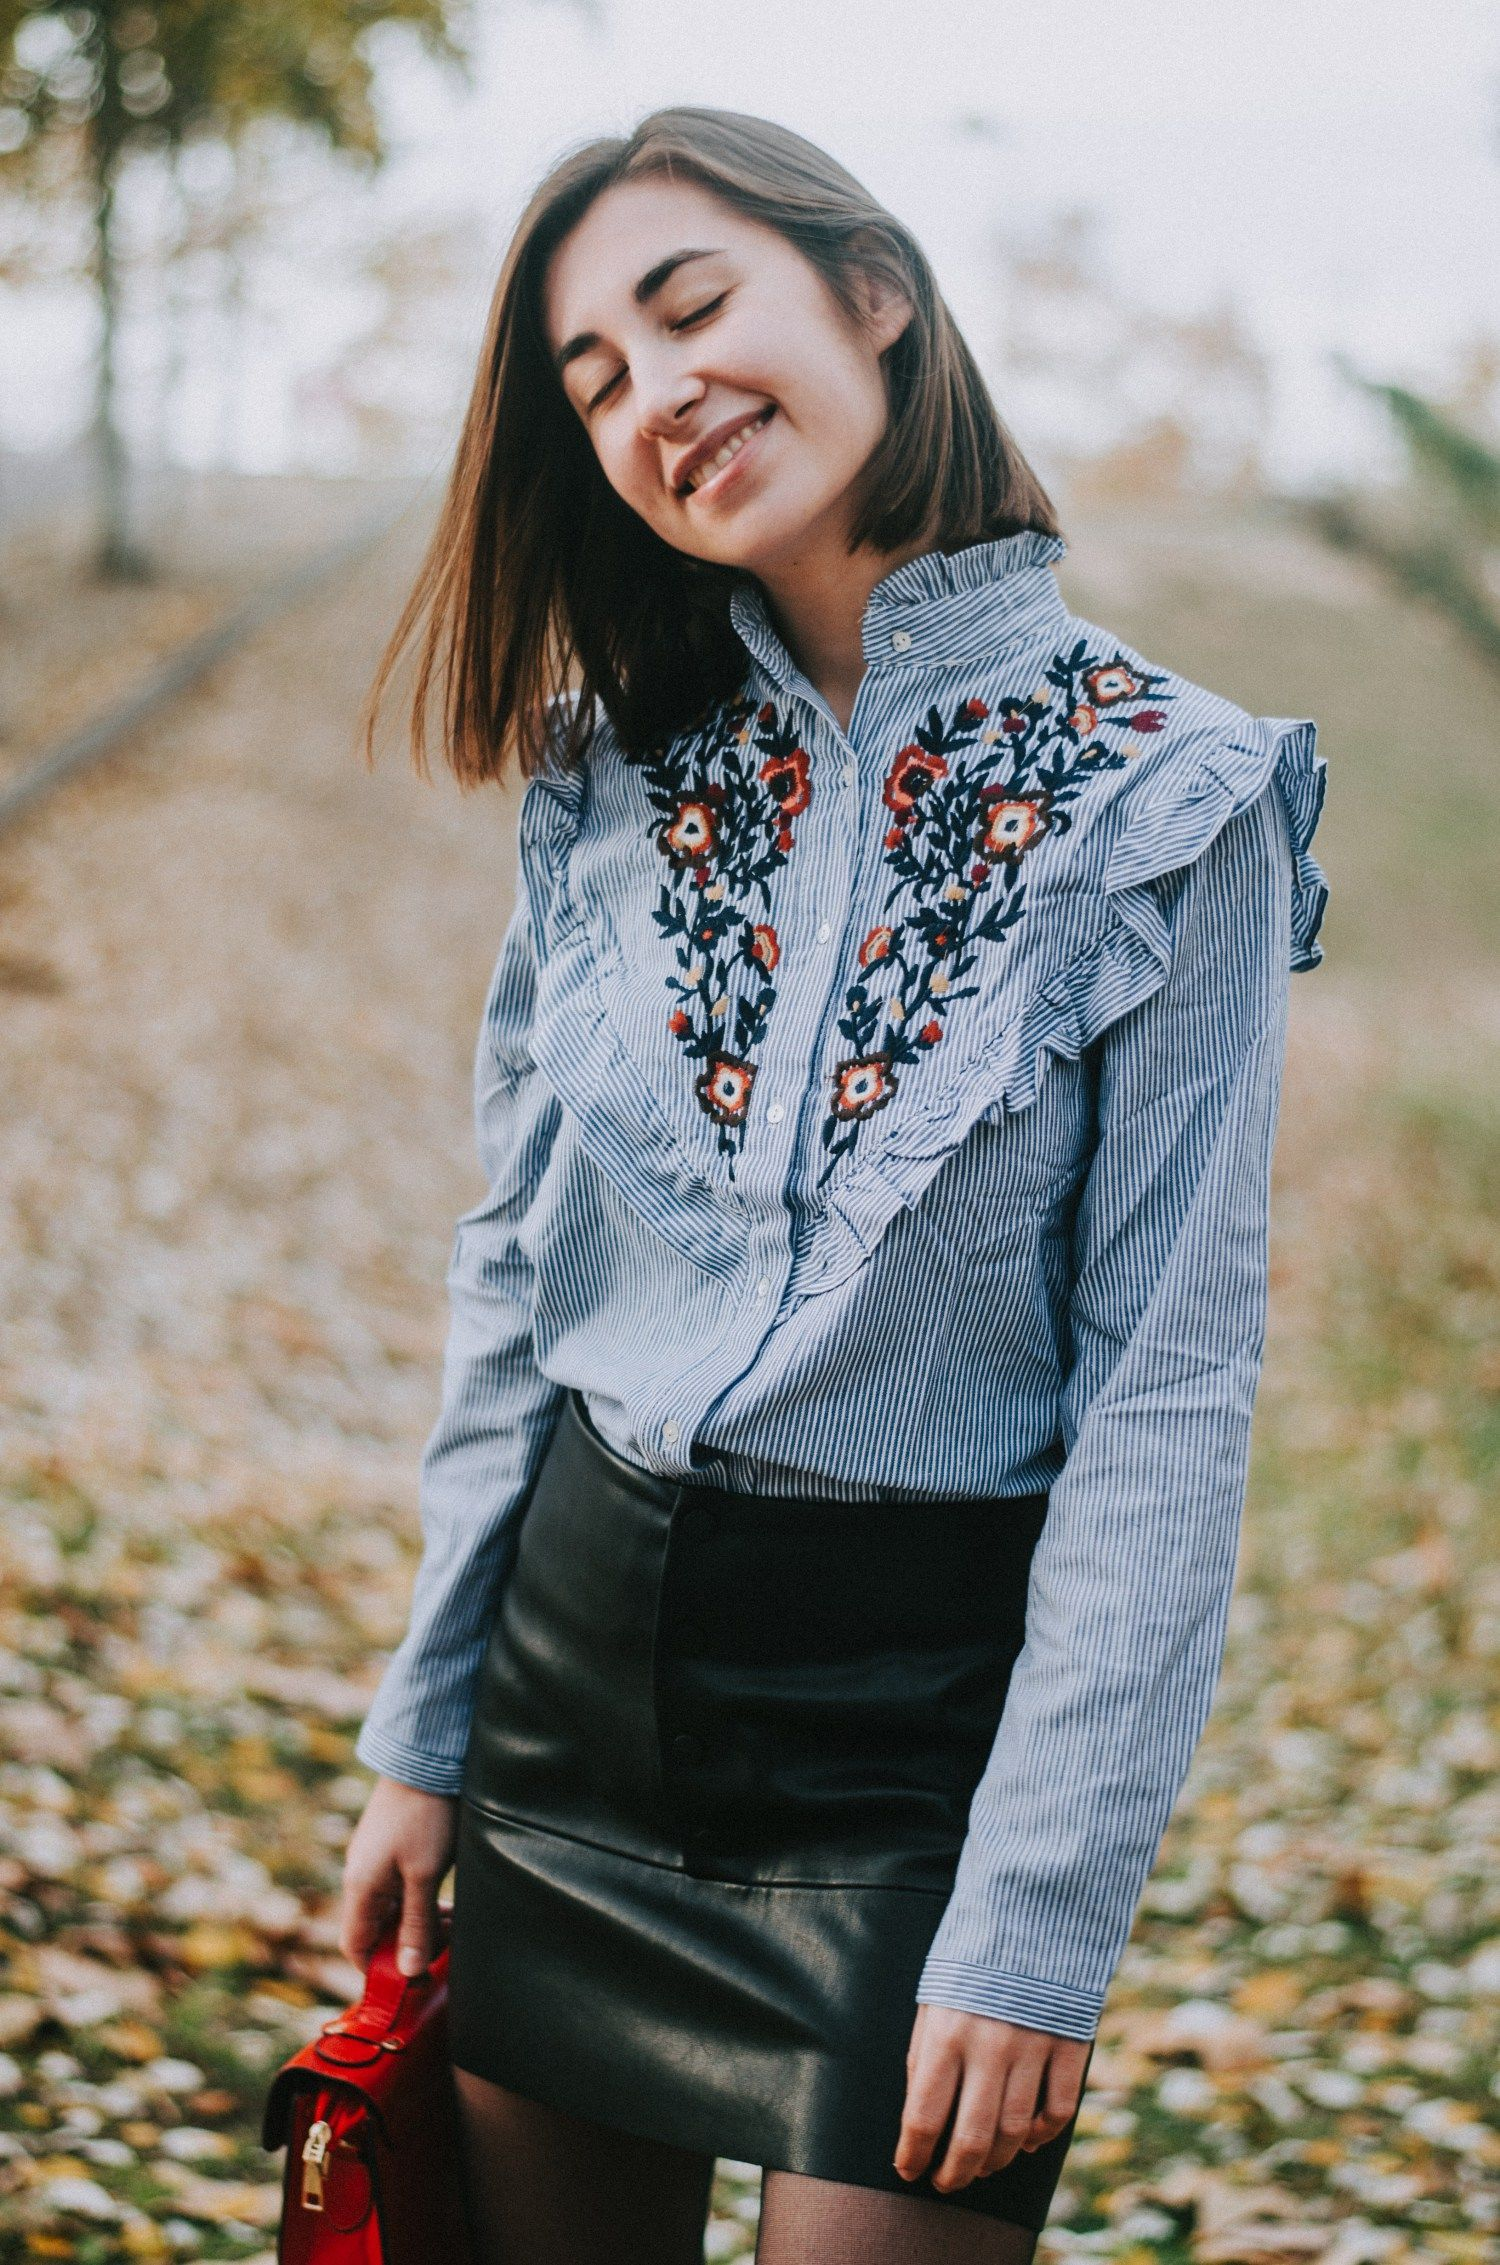 Simple and cute outfit ideas for Fall and Winter for college and high school students. We may have to wait till Spring to see flowers but at least we can still wear them!